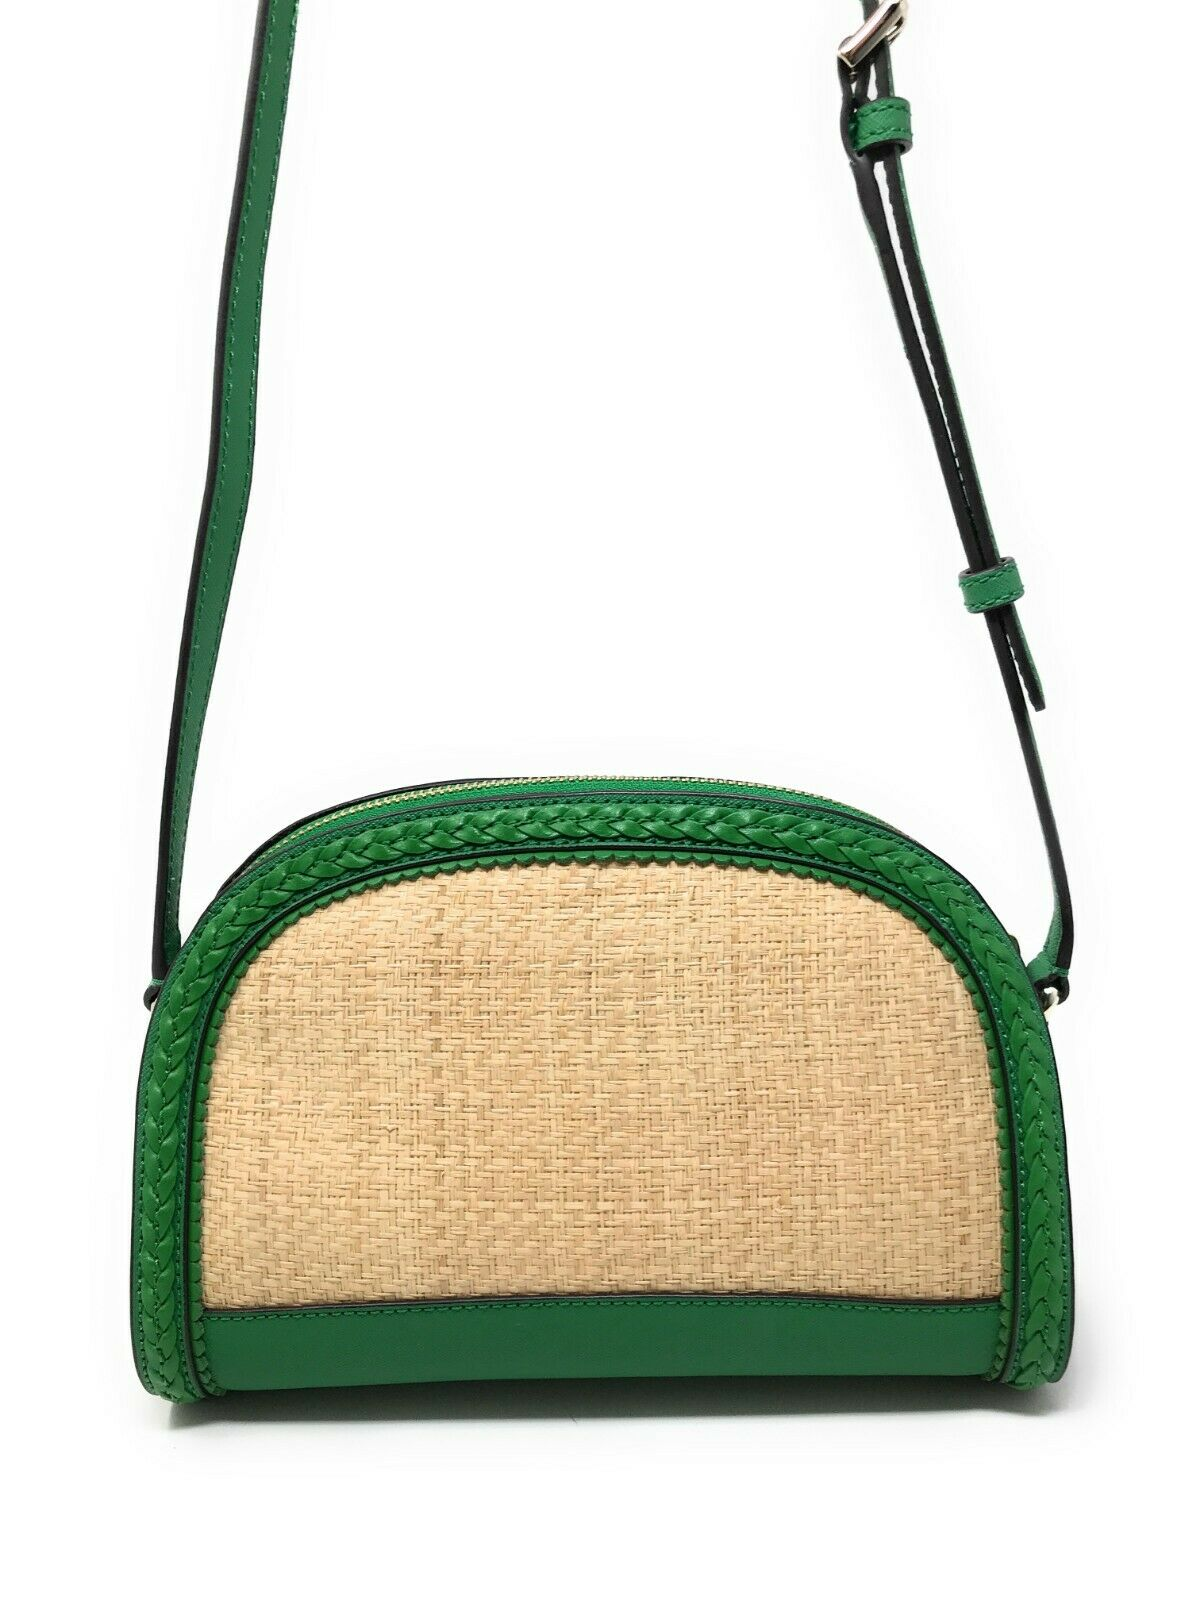 Kate Spade Dome Crossbody Reiley Straw Green Bean Handbag Summer WKRU5889